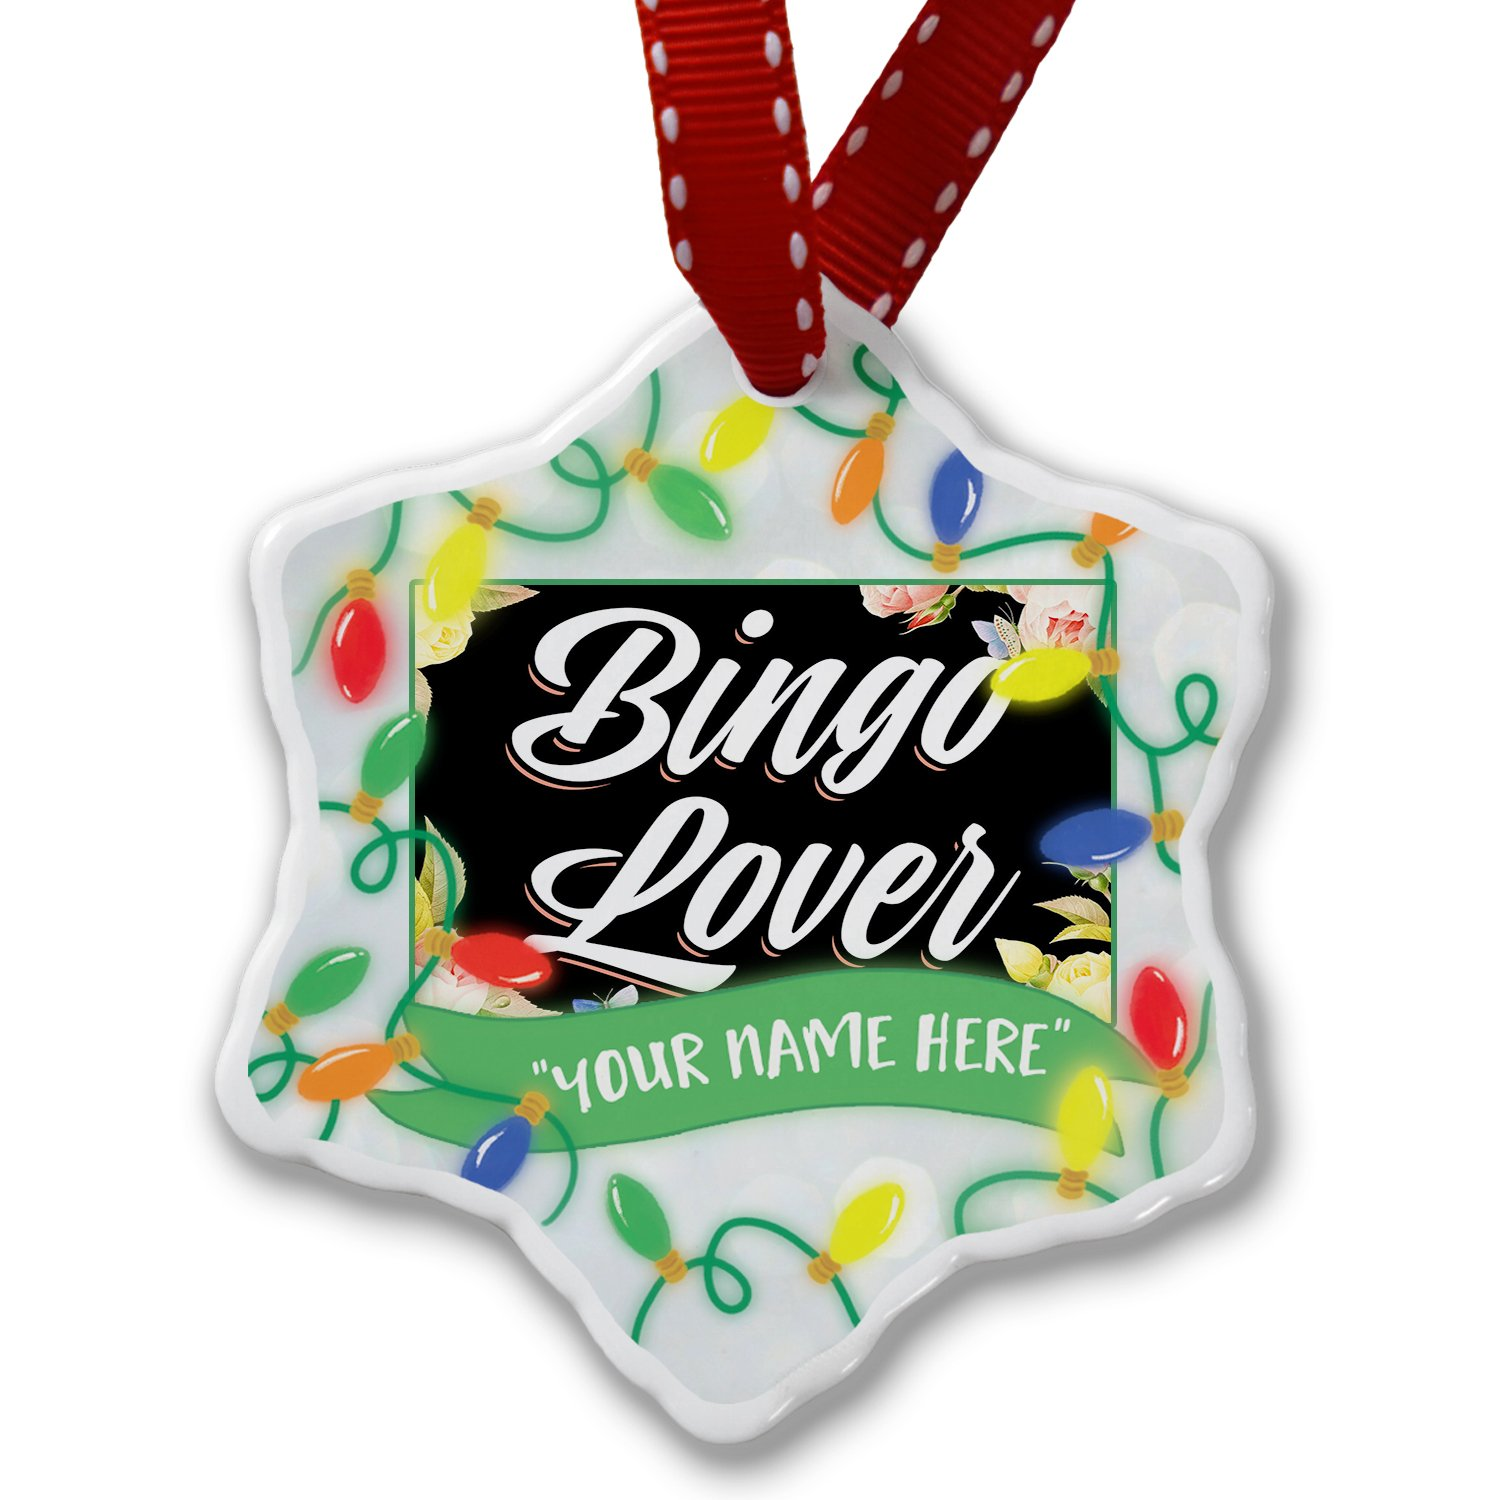 Personalized Name Christmas Ornament, Floral Border Bingo Lover NEONBLOND